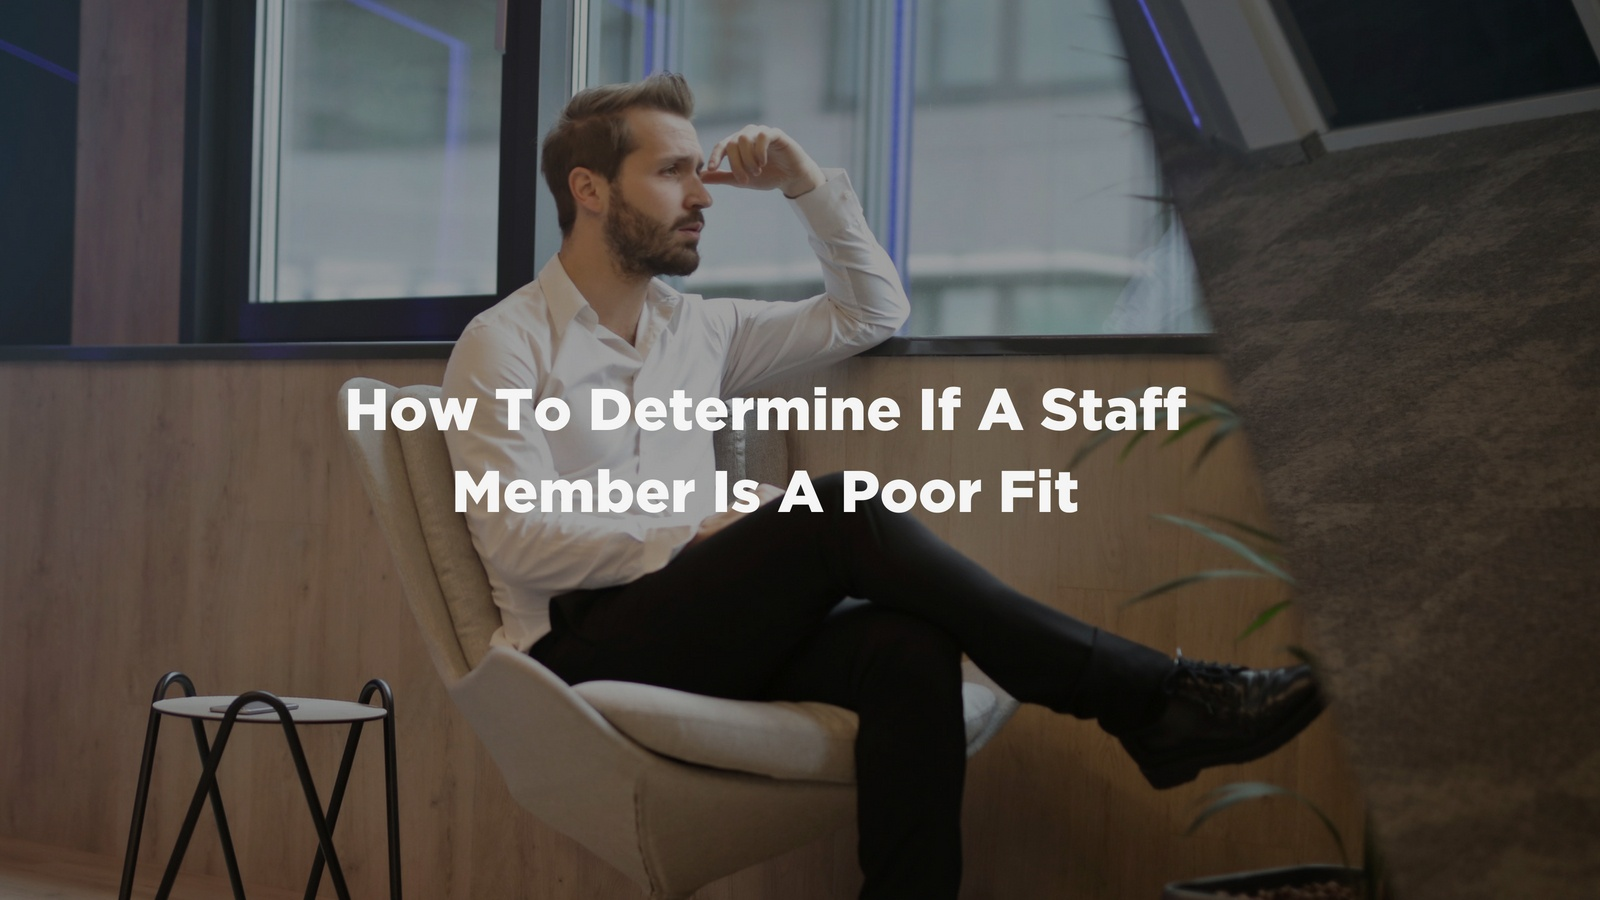 How To Determine If A Staff Member Is A Poor Fit